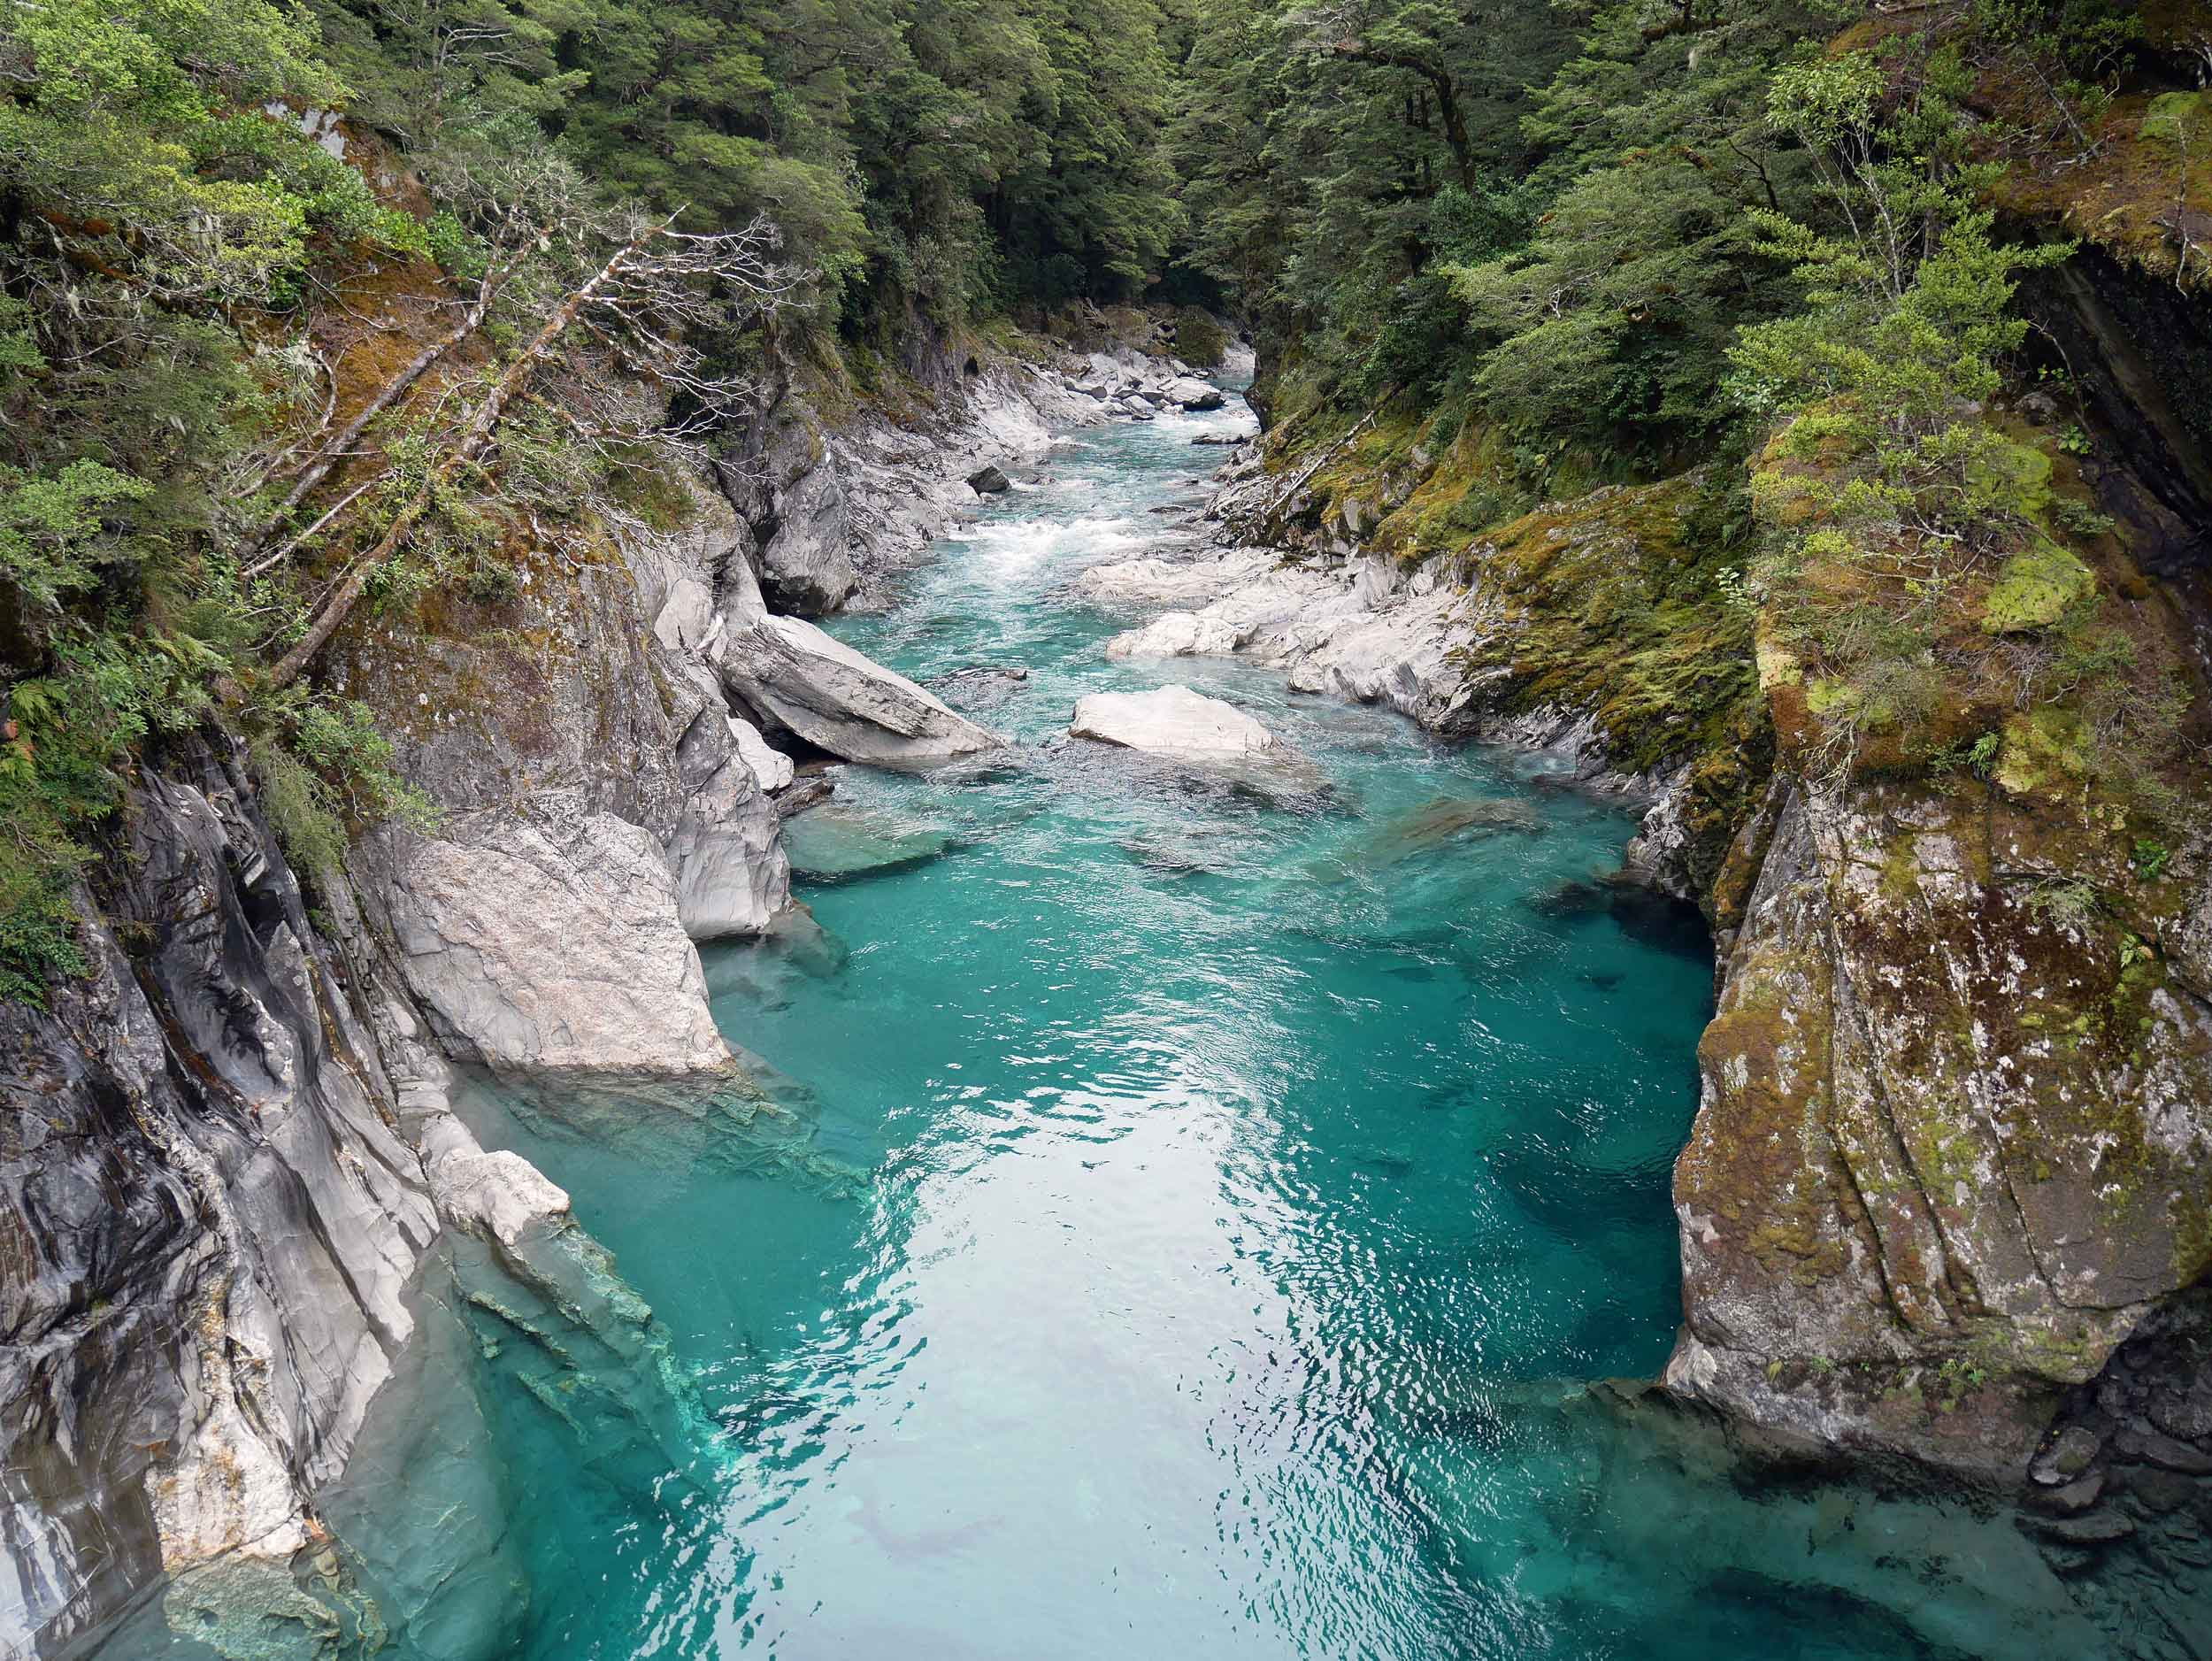 We also took a short walk across another swing bridge to take in the crystal Blue Pools of the Makaroa River (Jan 7).